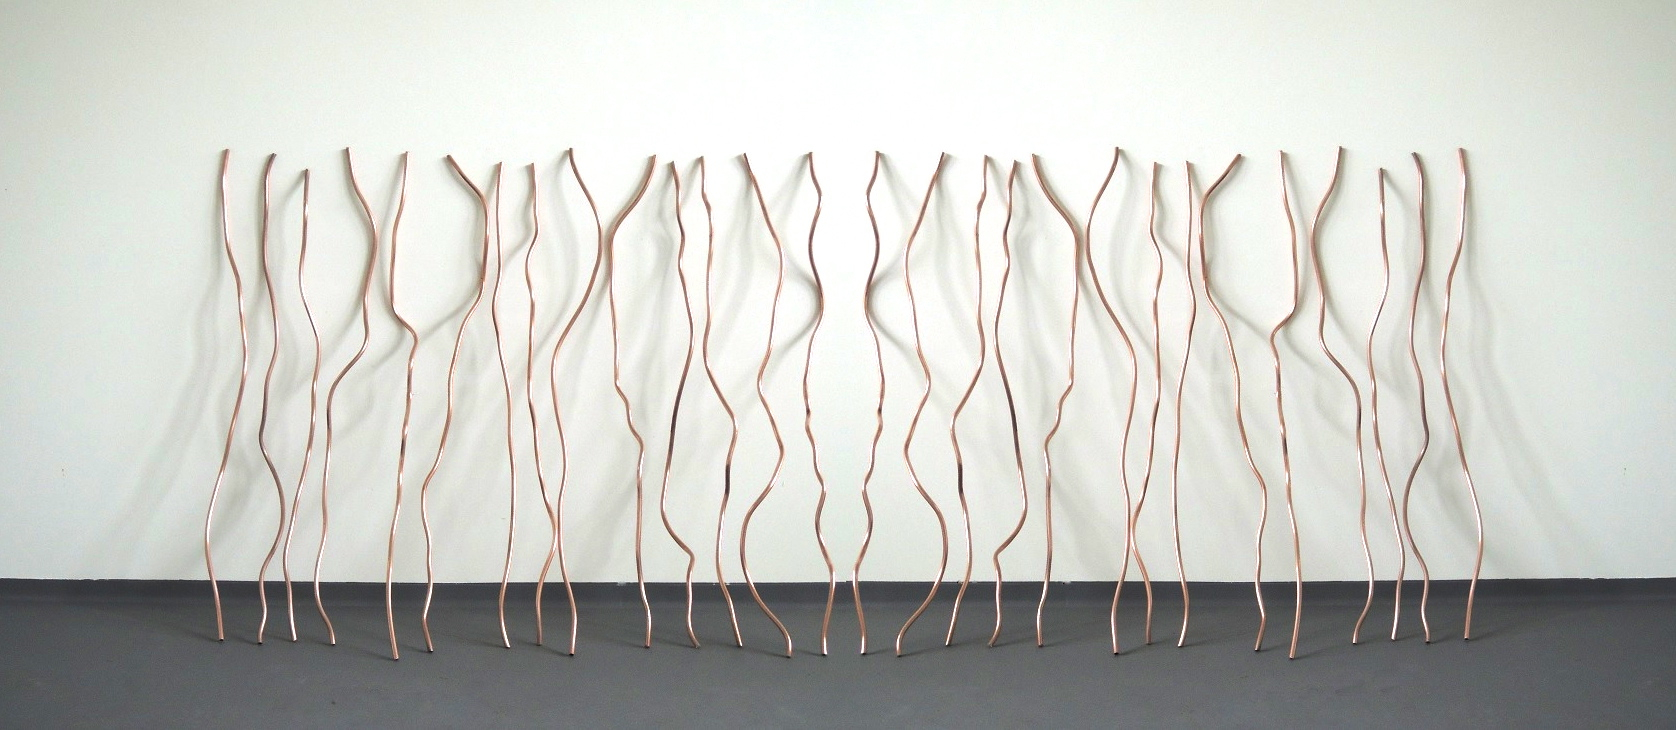 Untitled (copper tubes) - 2013